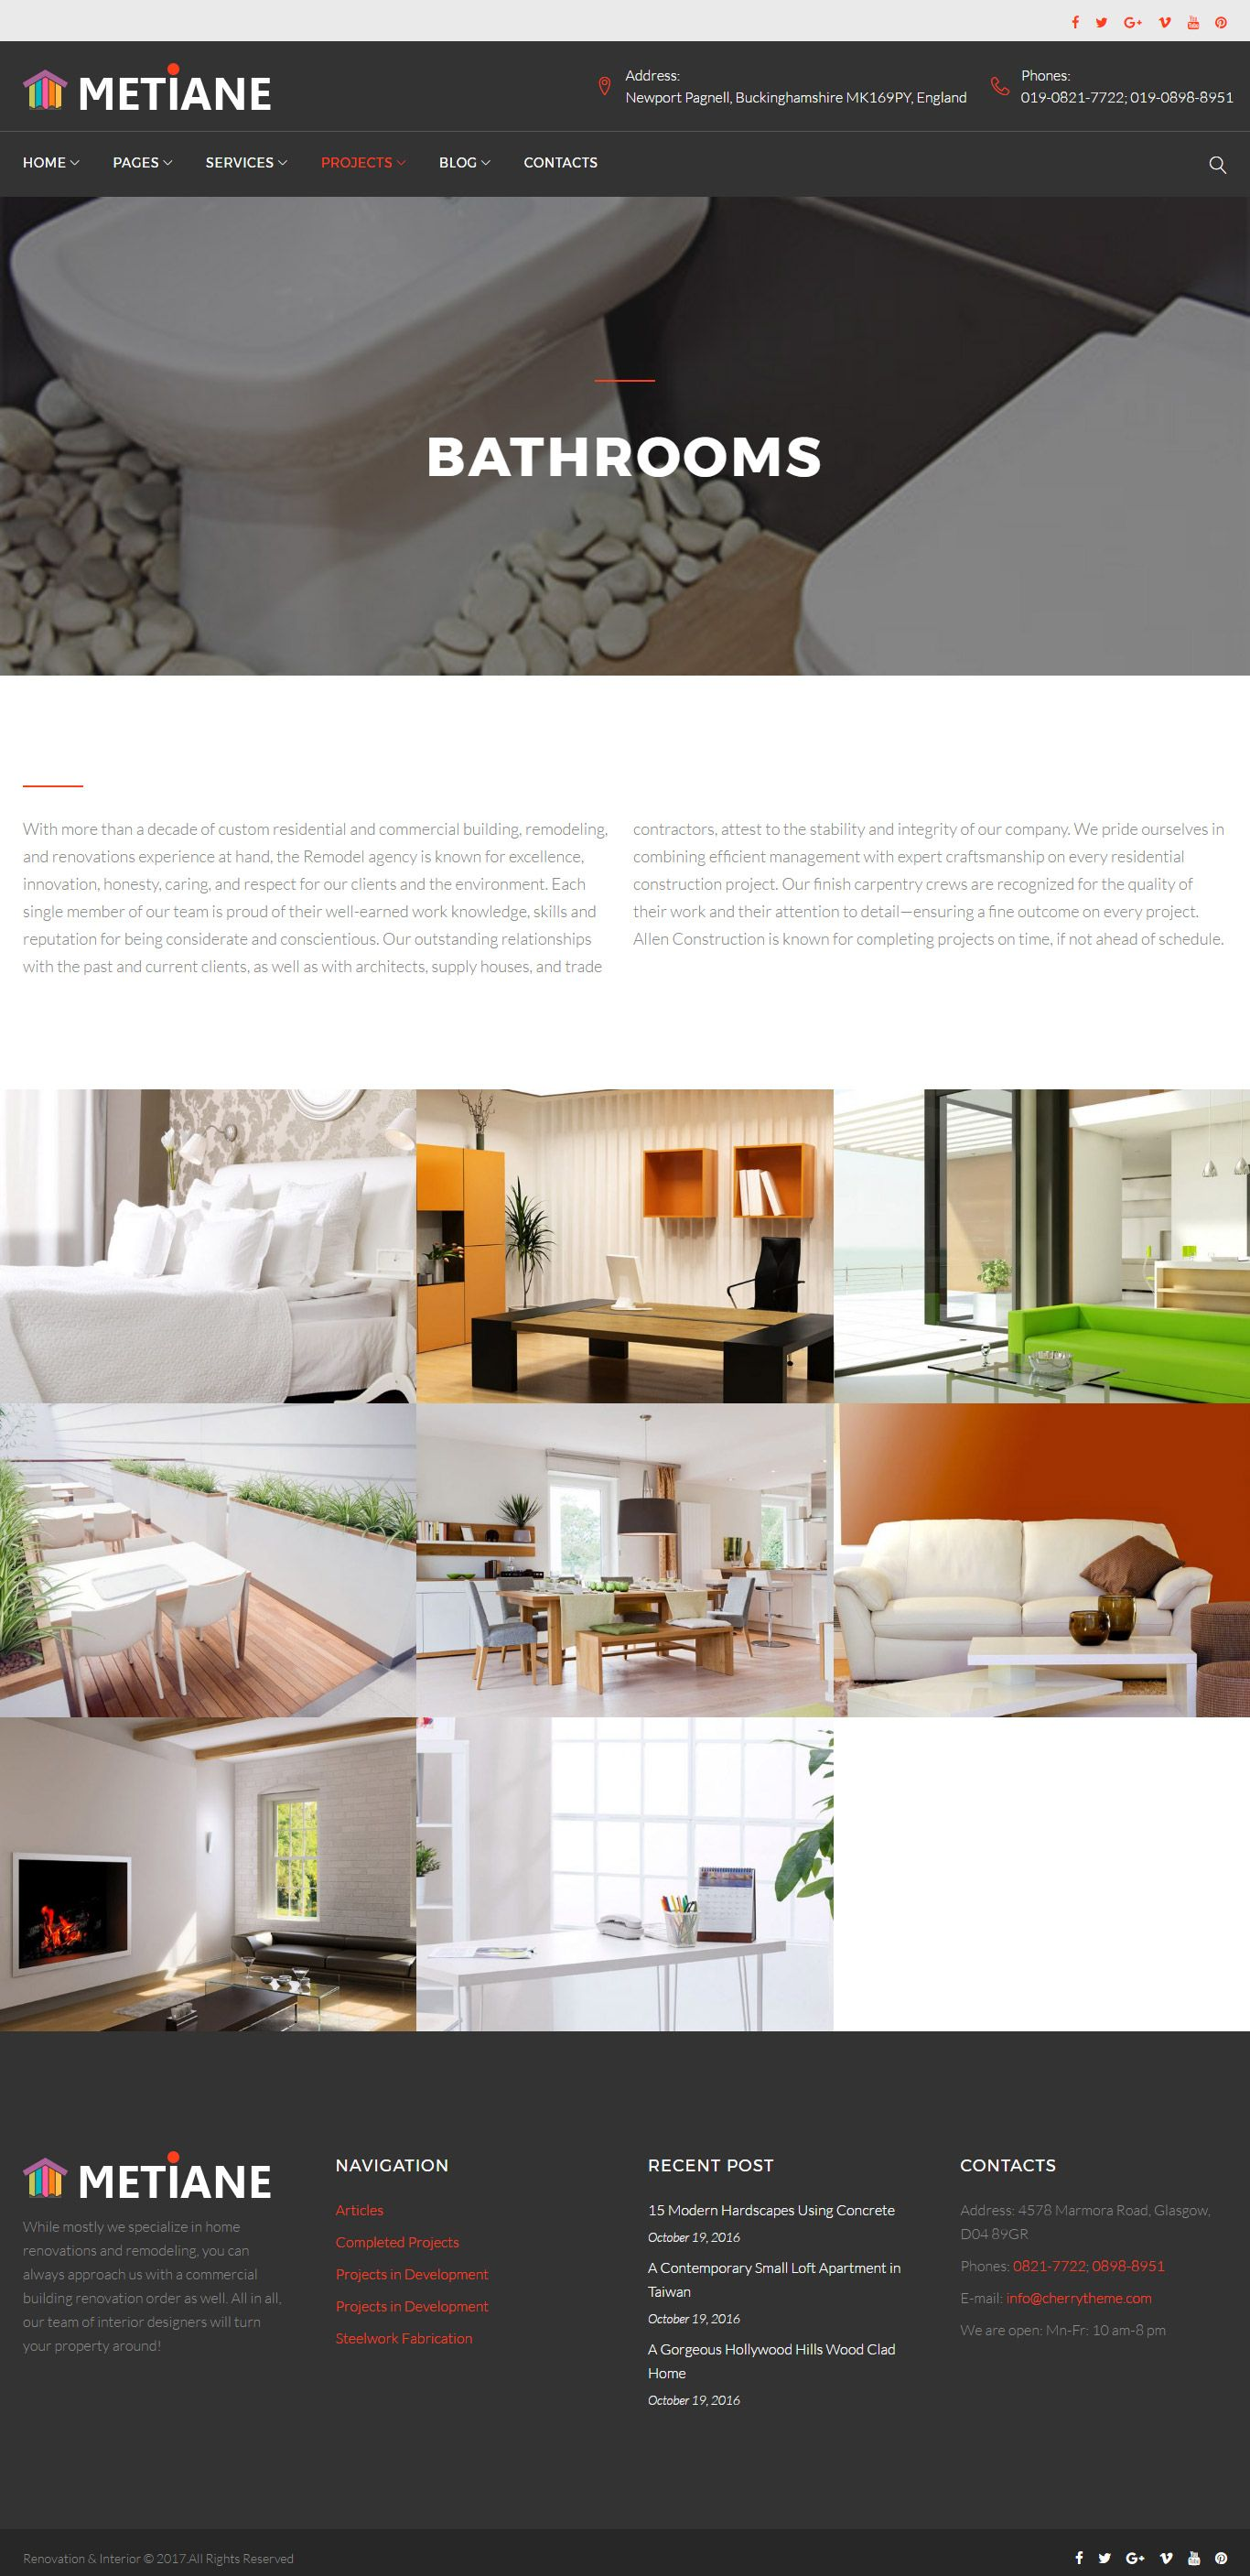 Metiane - Interior Design Wordpress Theme Screenshot 4